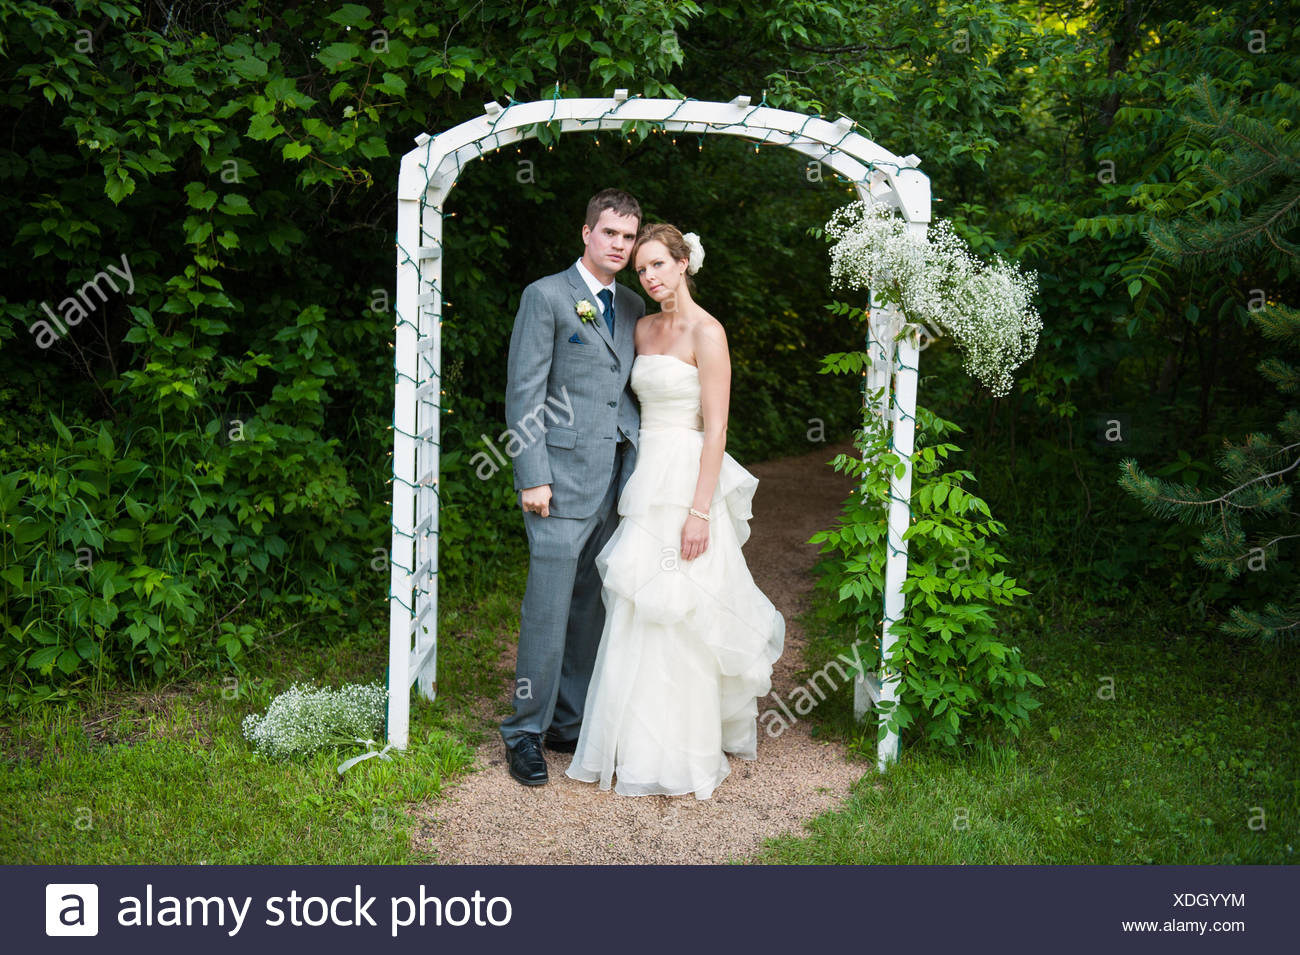 A bride and groom stand under an archway on their wedding day. Stock Photo